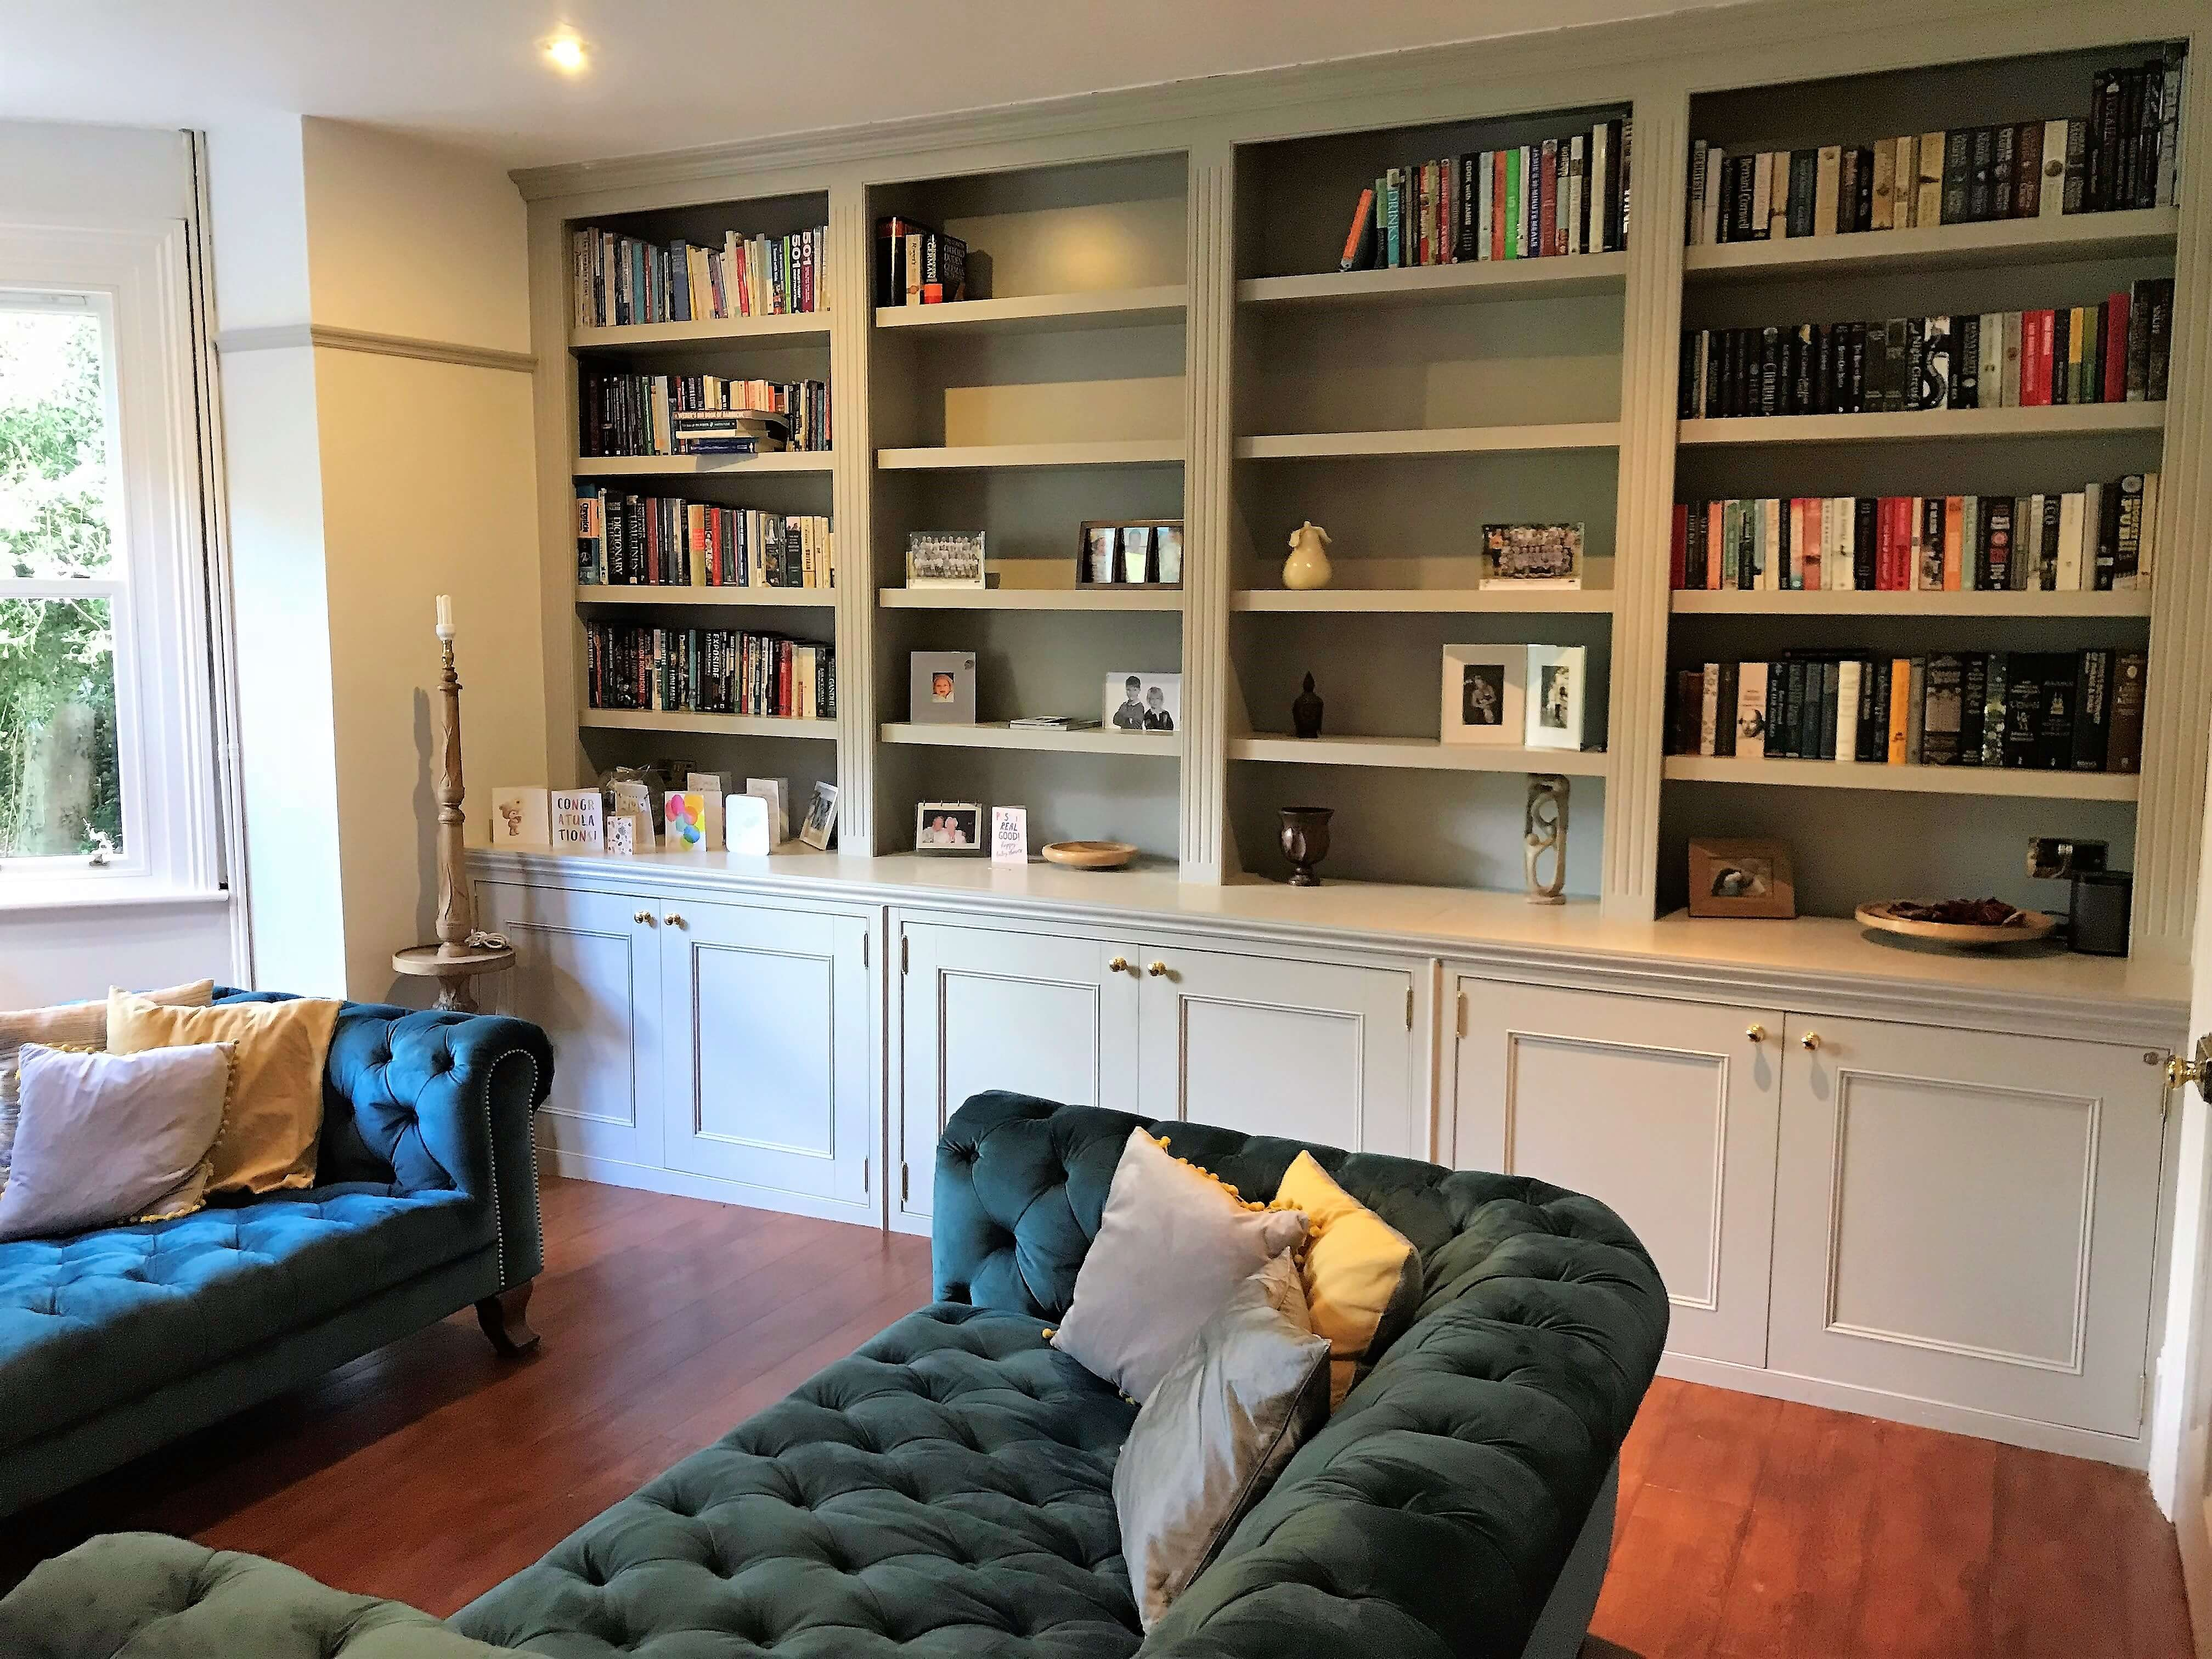 Bespoke bookcase, Fitted Furniture, Elegant Bespoke Living, Bookcase, Victorian House, Lounge, Carpentry, Joinery, Leamington Spa, Warwick, Shelves, Shelf, Storage